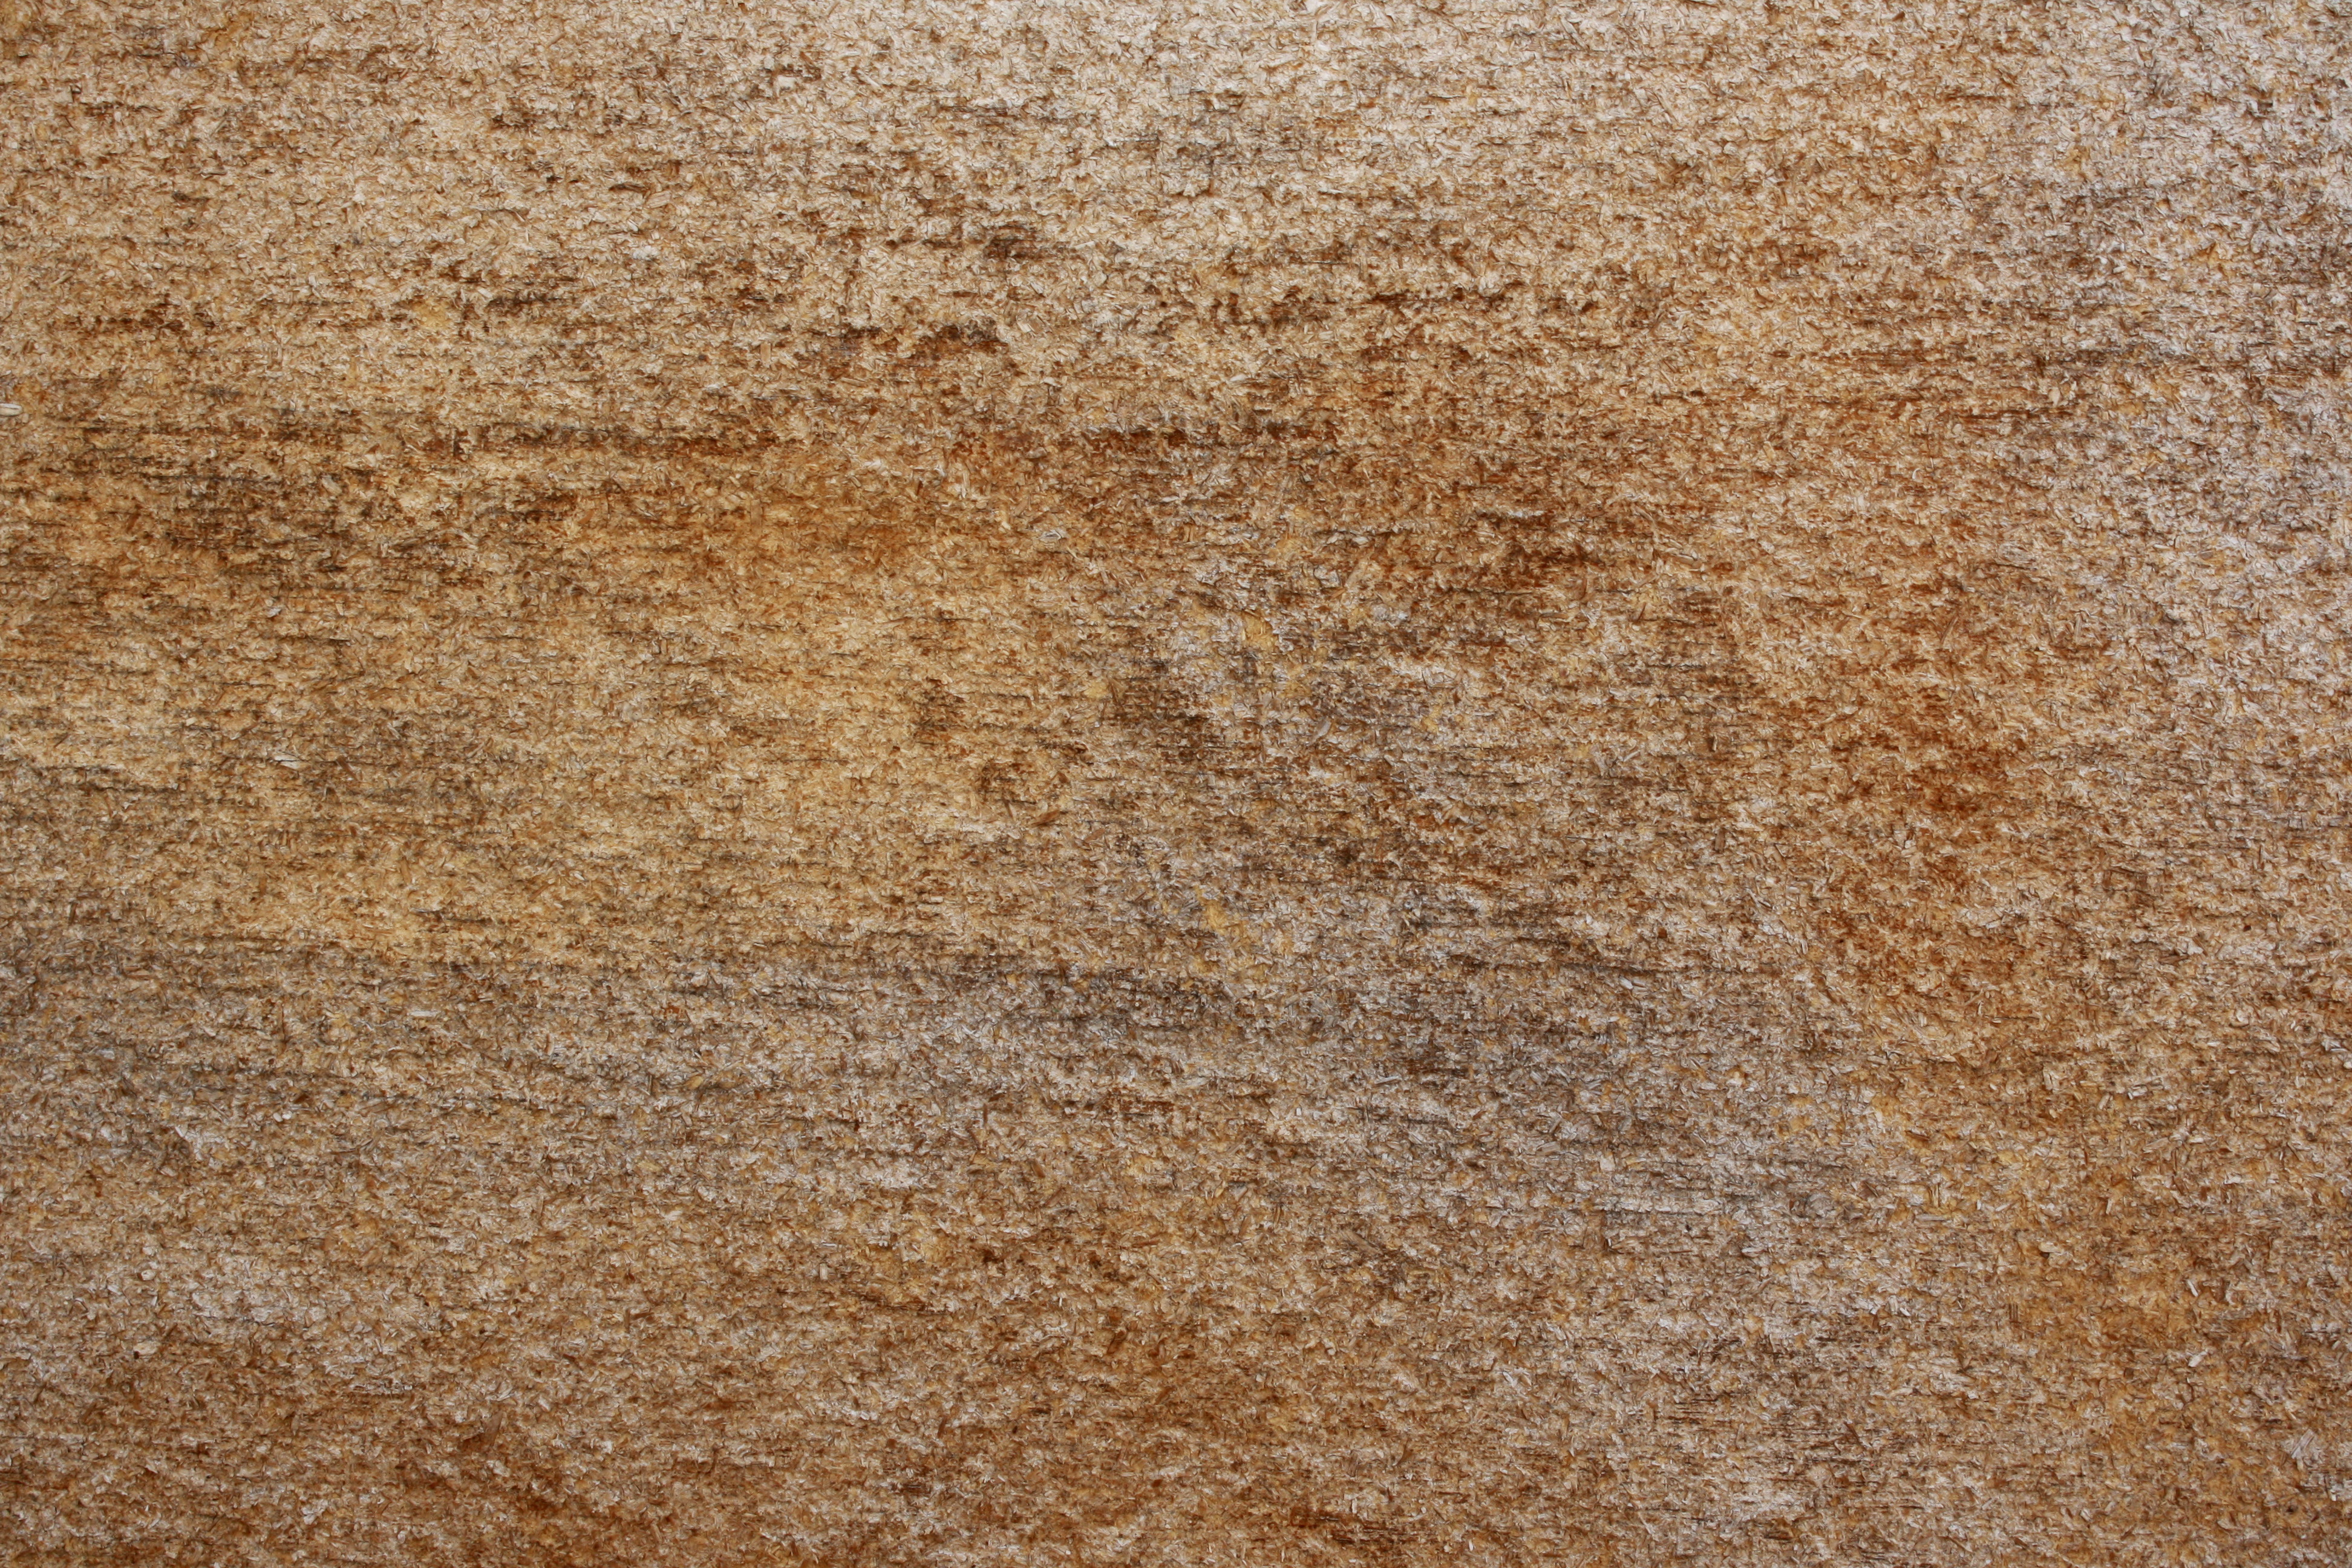 Weathered particle board texture photos public domain